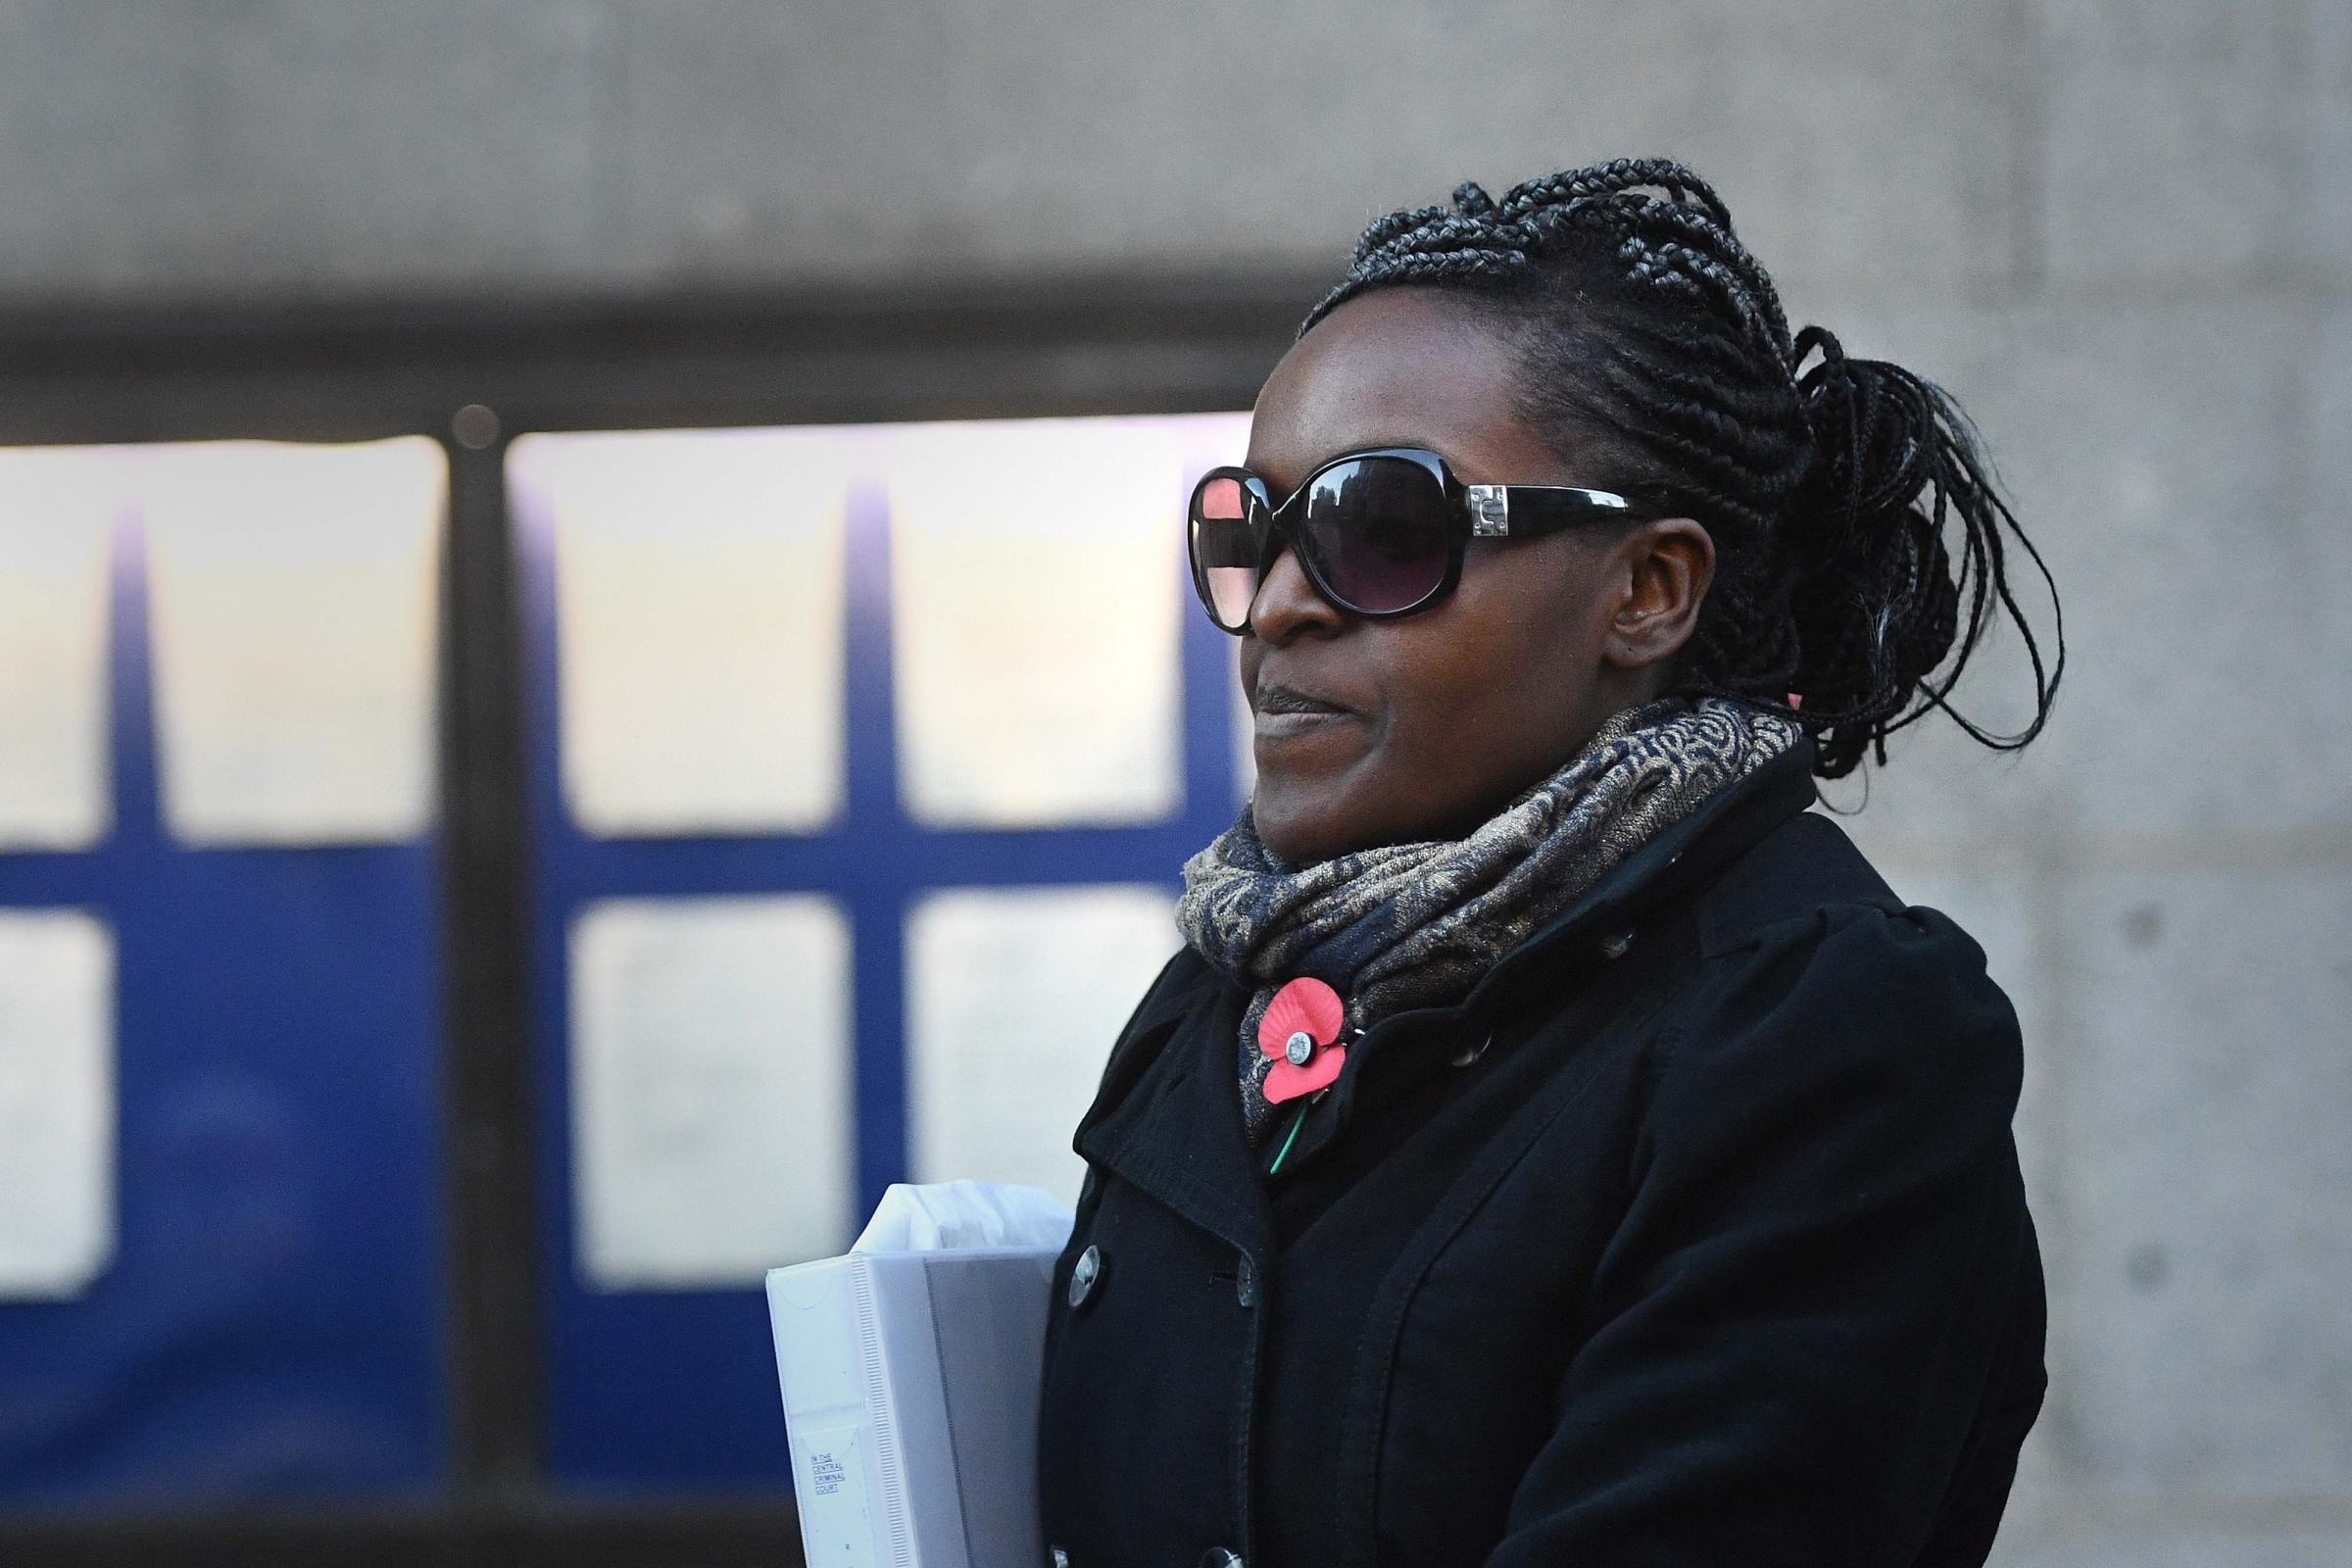 Labour MP plotted with brother to evade speeding prosecution, court told